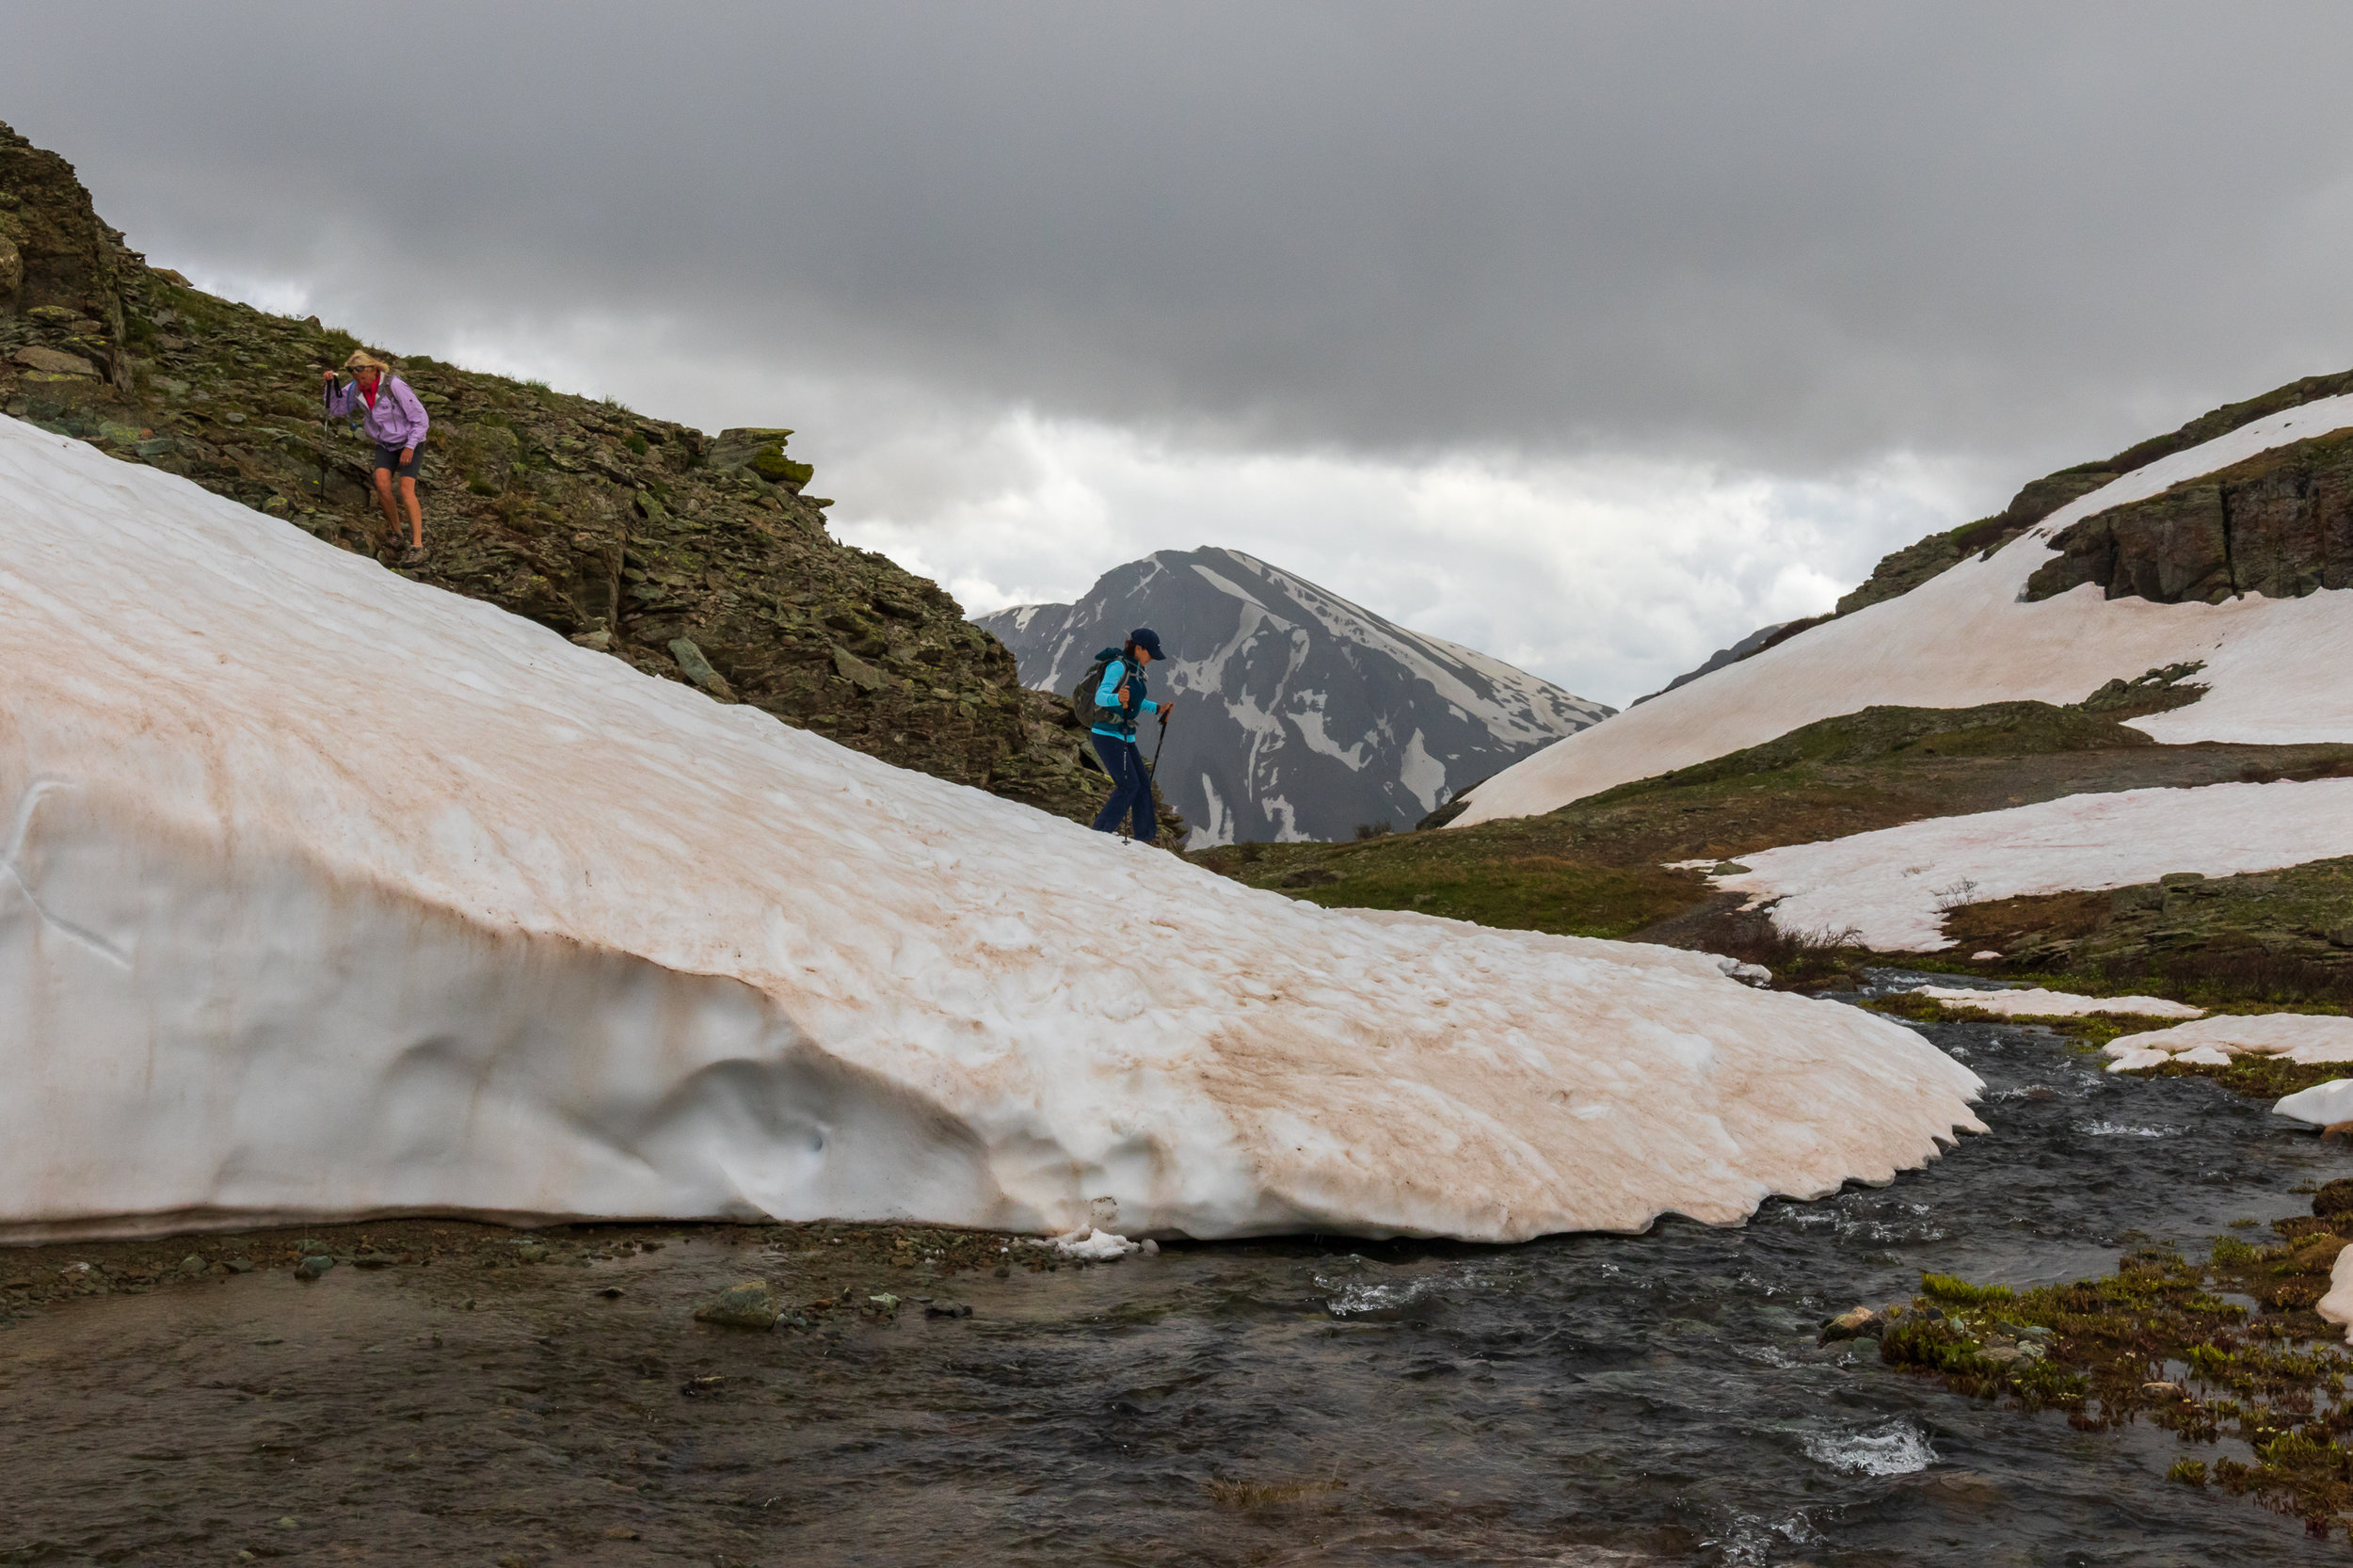 Stream and snow remaining in the basin